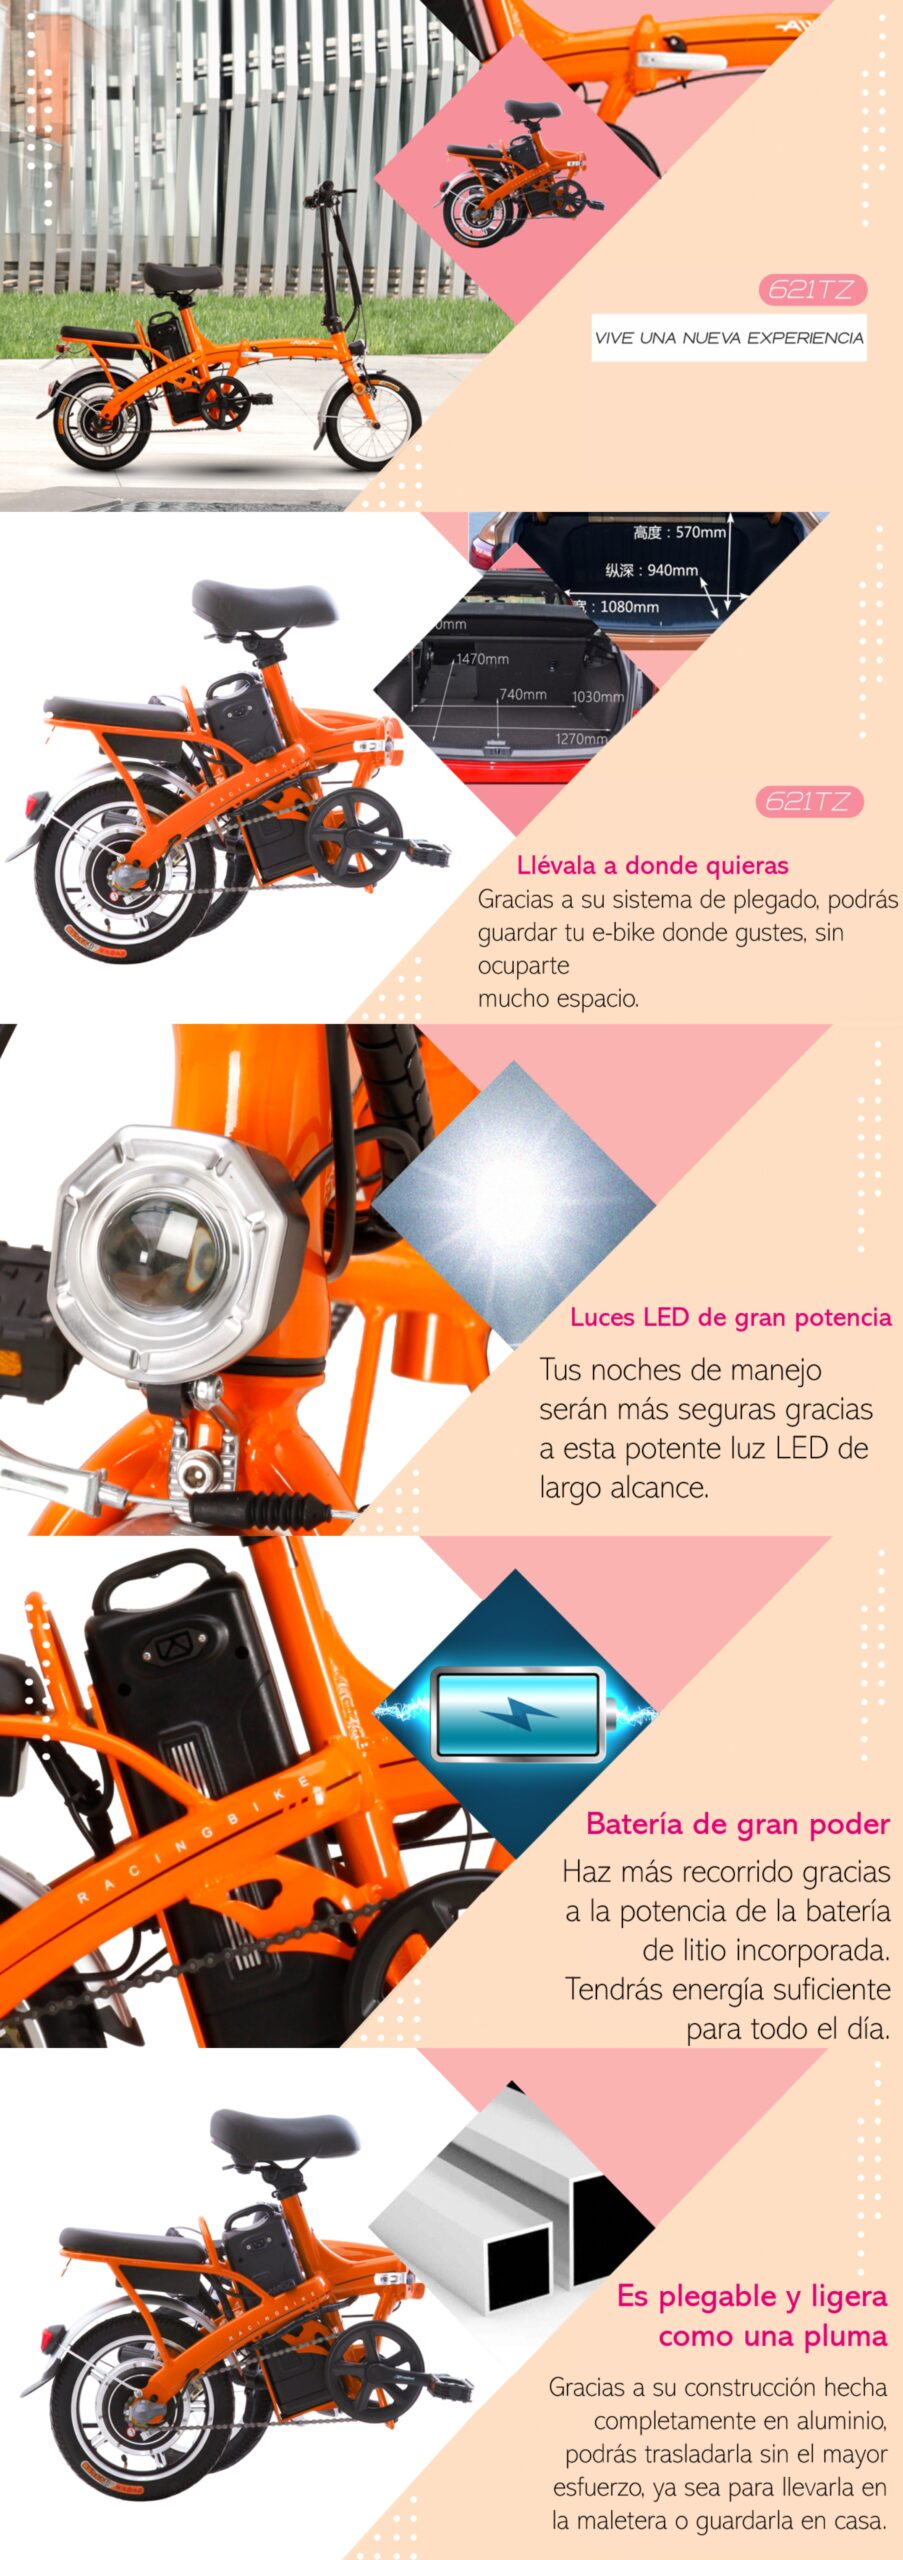 621tz wp todo scaled AIMA Peru - Motos Electricas Peru